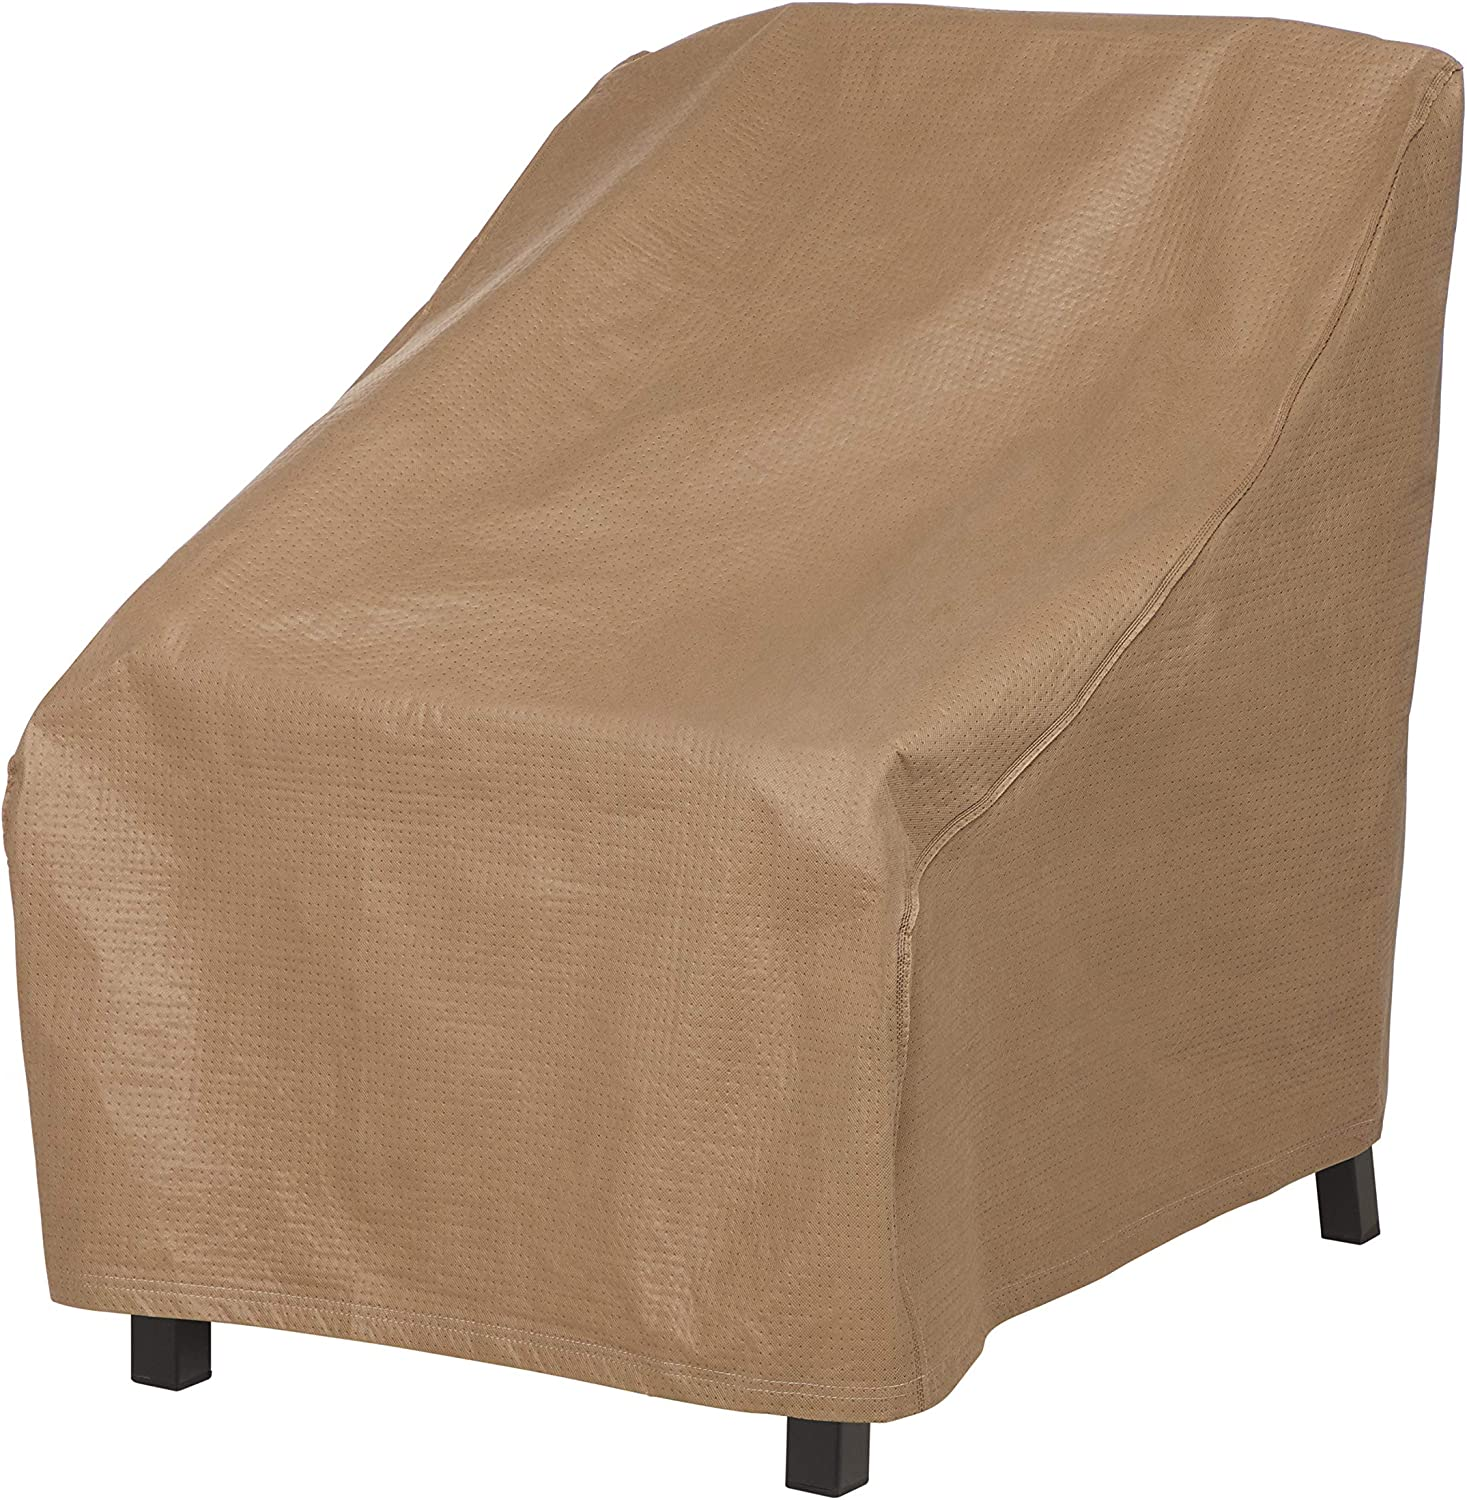 Duck Covers Essential Patio Chair Cover, 36-Inch